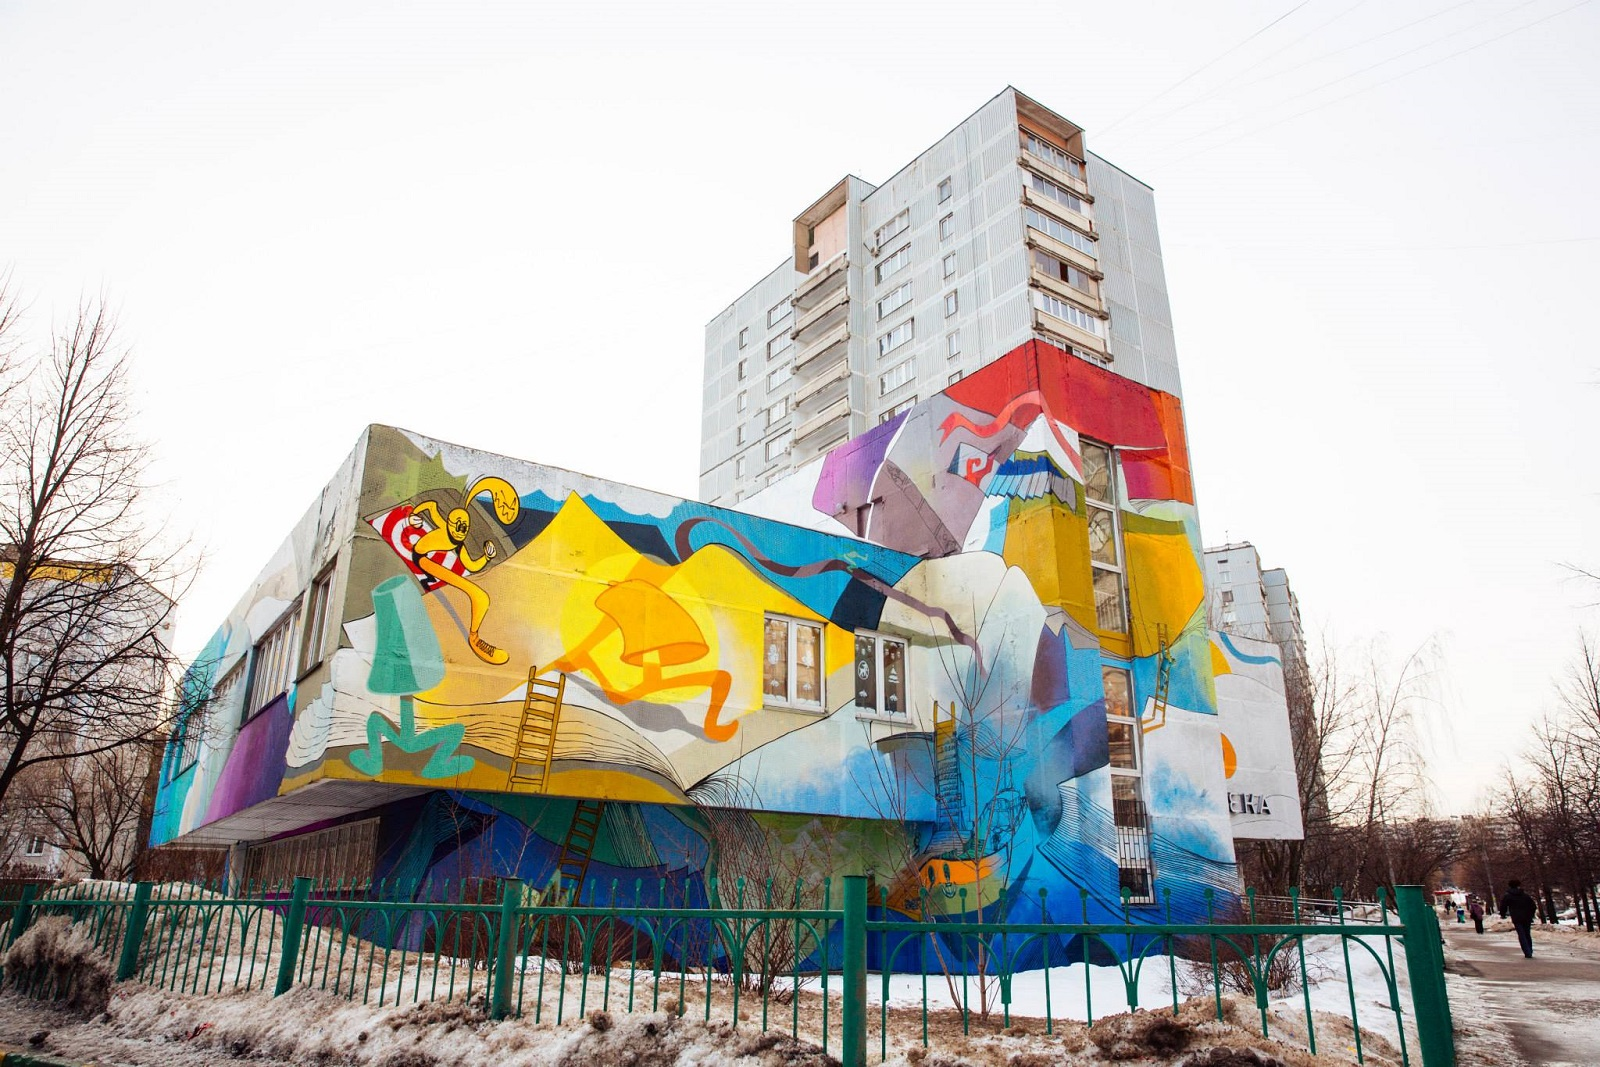 eloom-new-mural-in-mosca-09